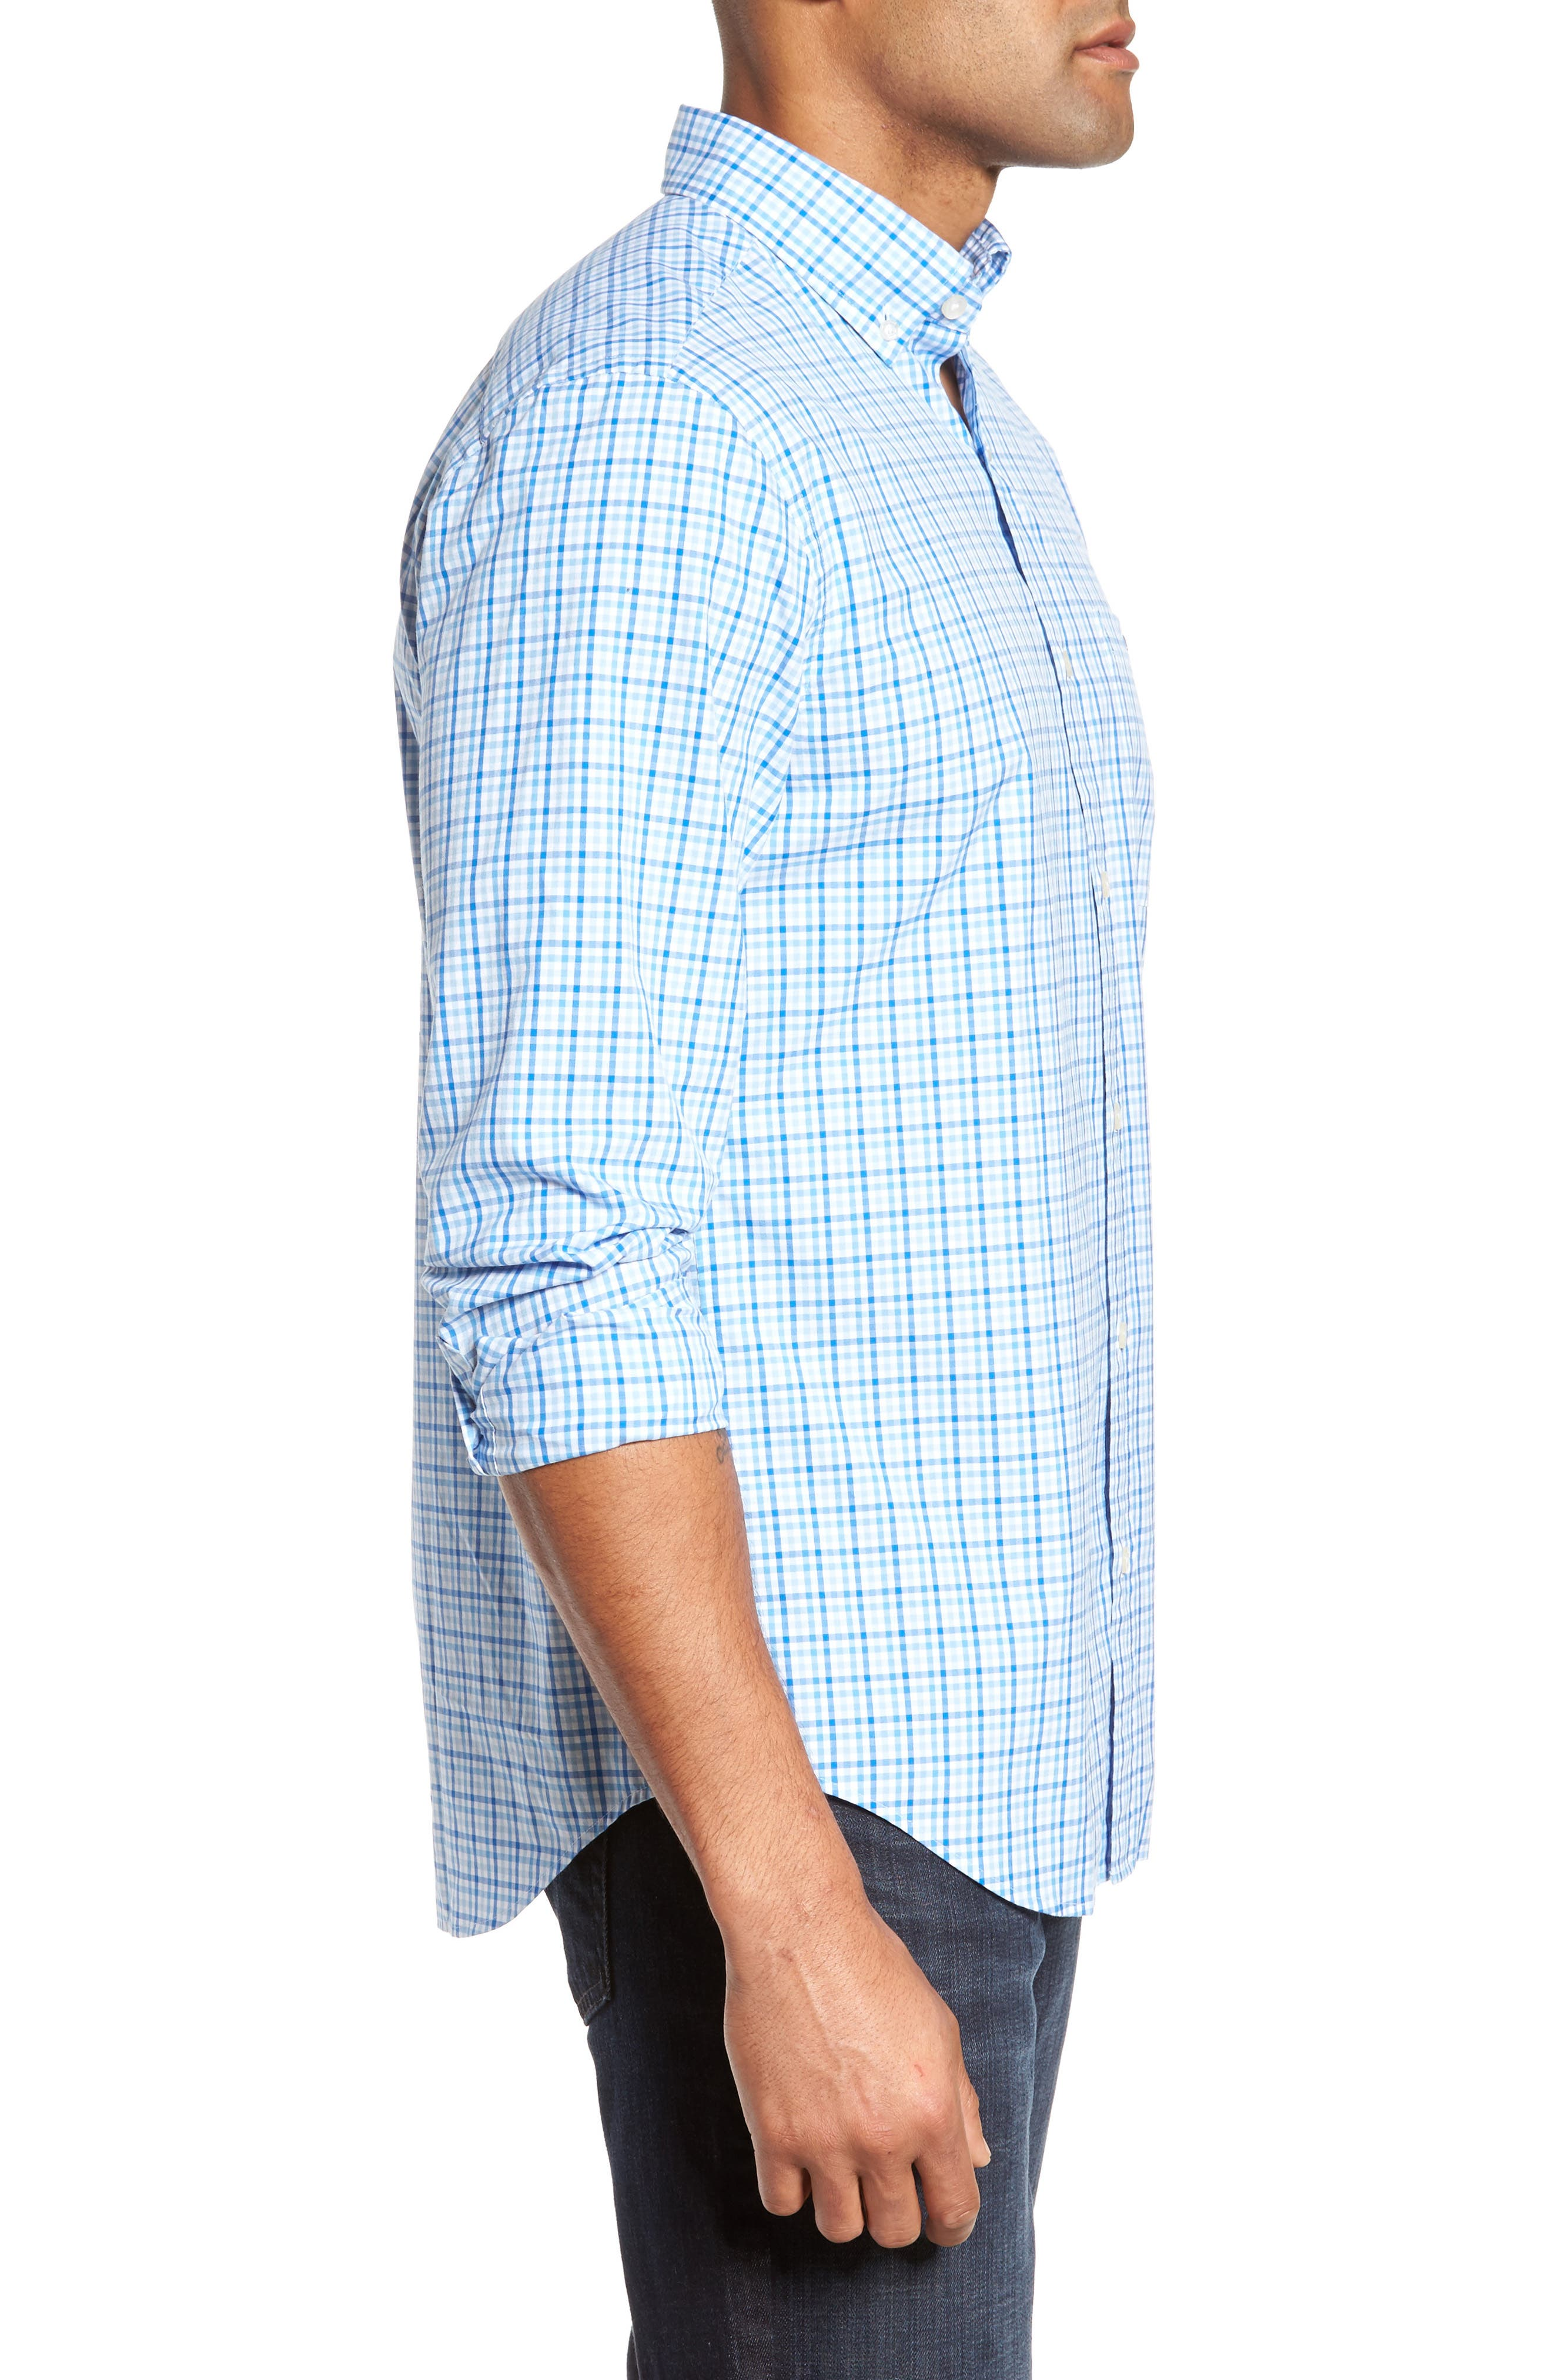 Munroe Tucker Classic Fit Gingham Sport Shirt,                             Alternate thumbnail 3, color,                             Jake Blue